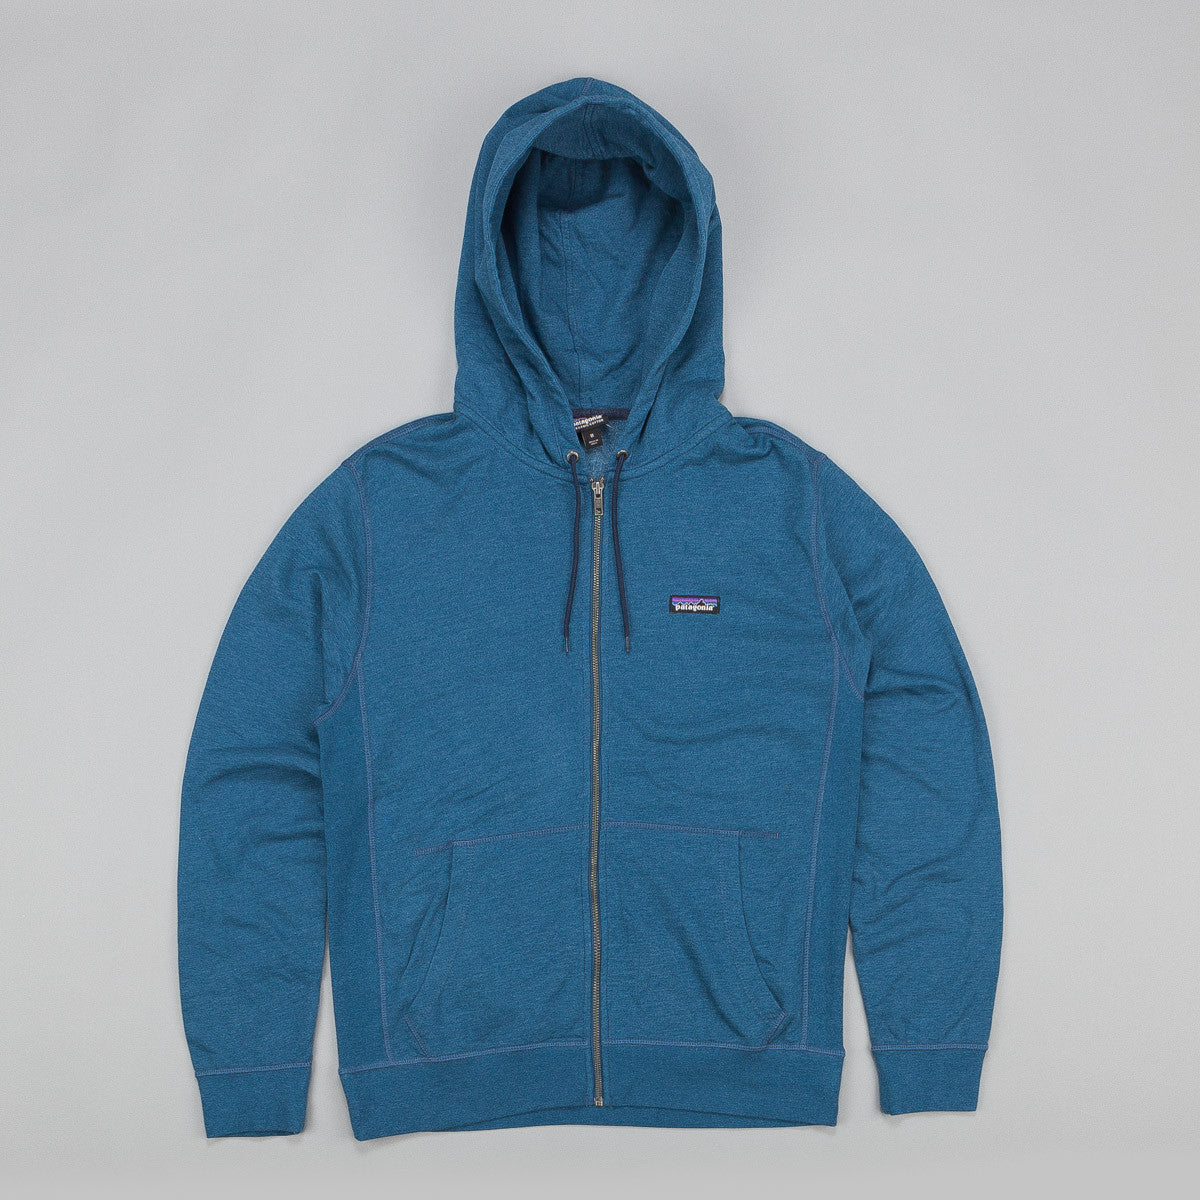 Patagonia Lightweight Full Zip Hooded Sweatshirt